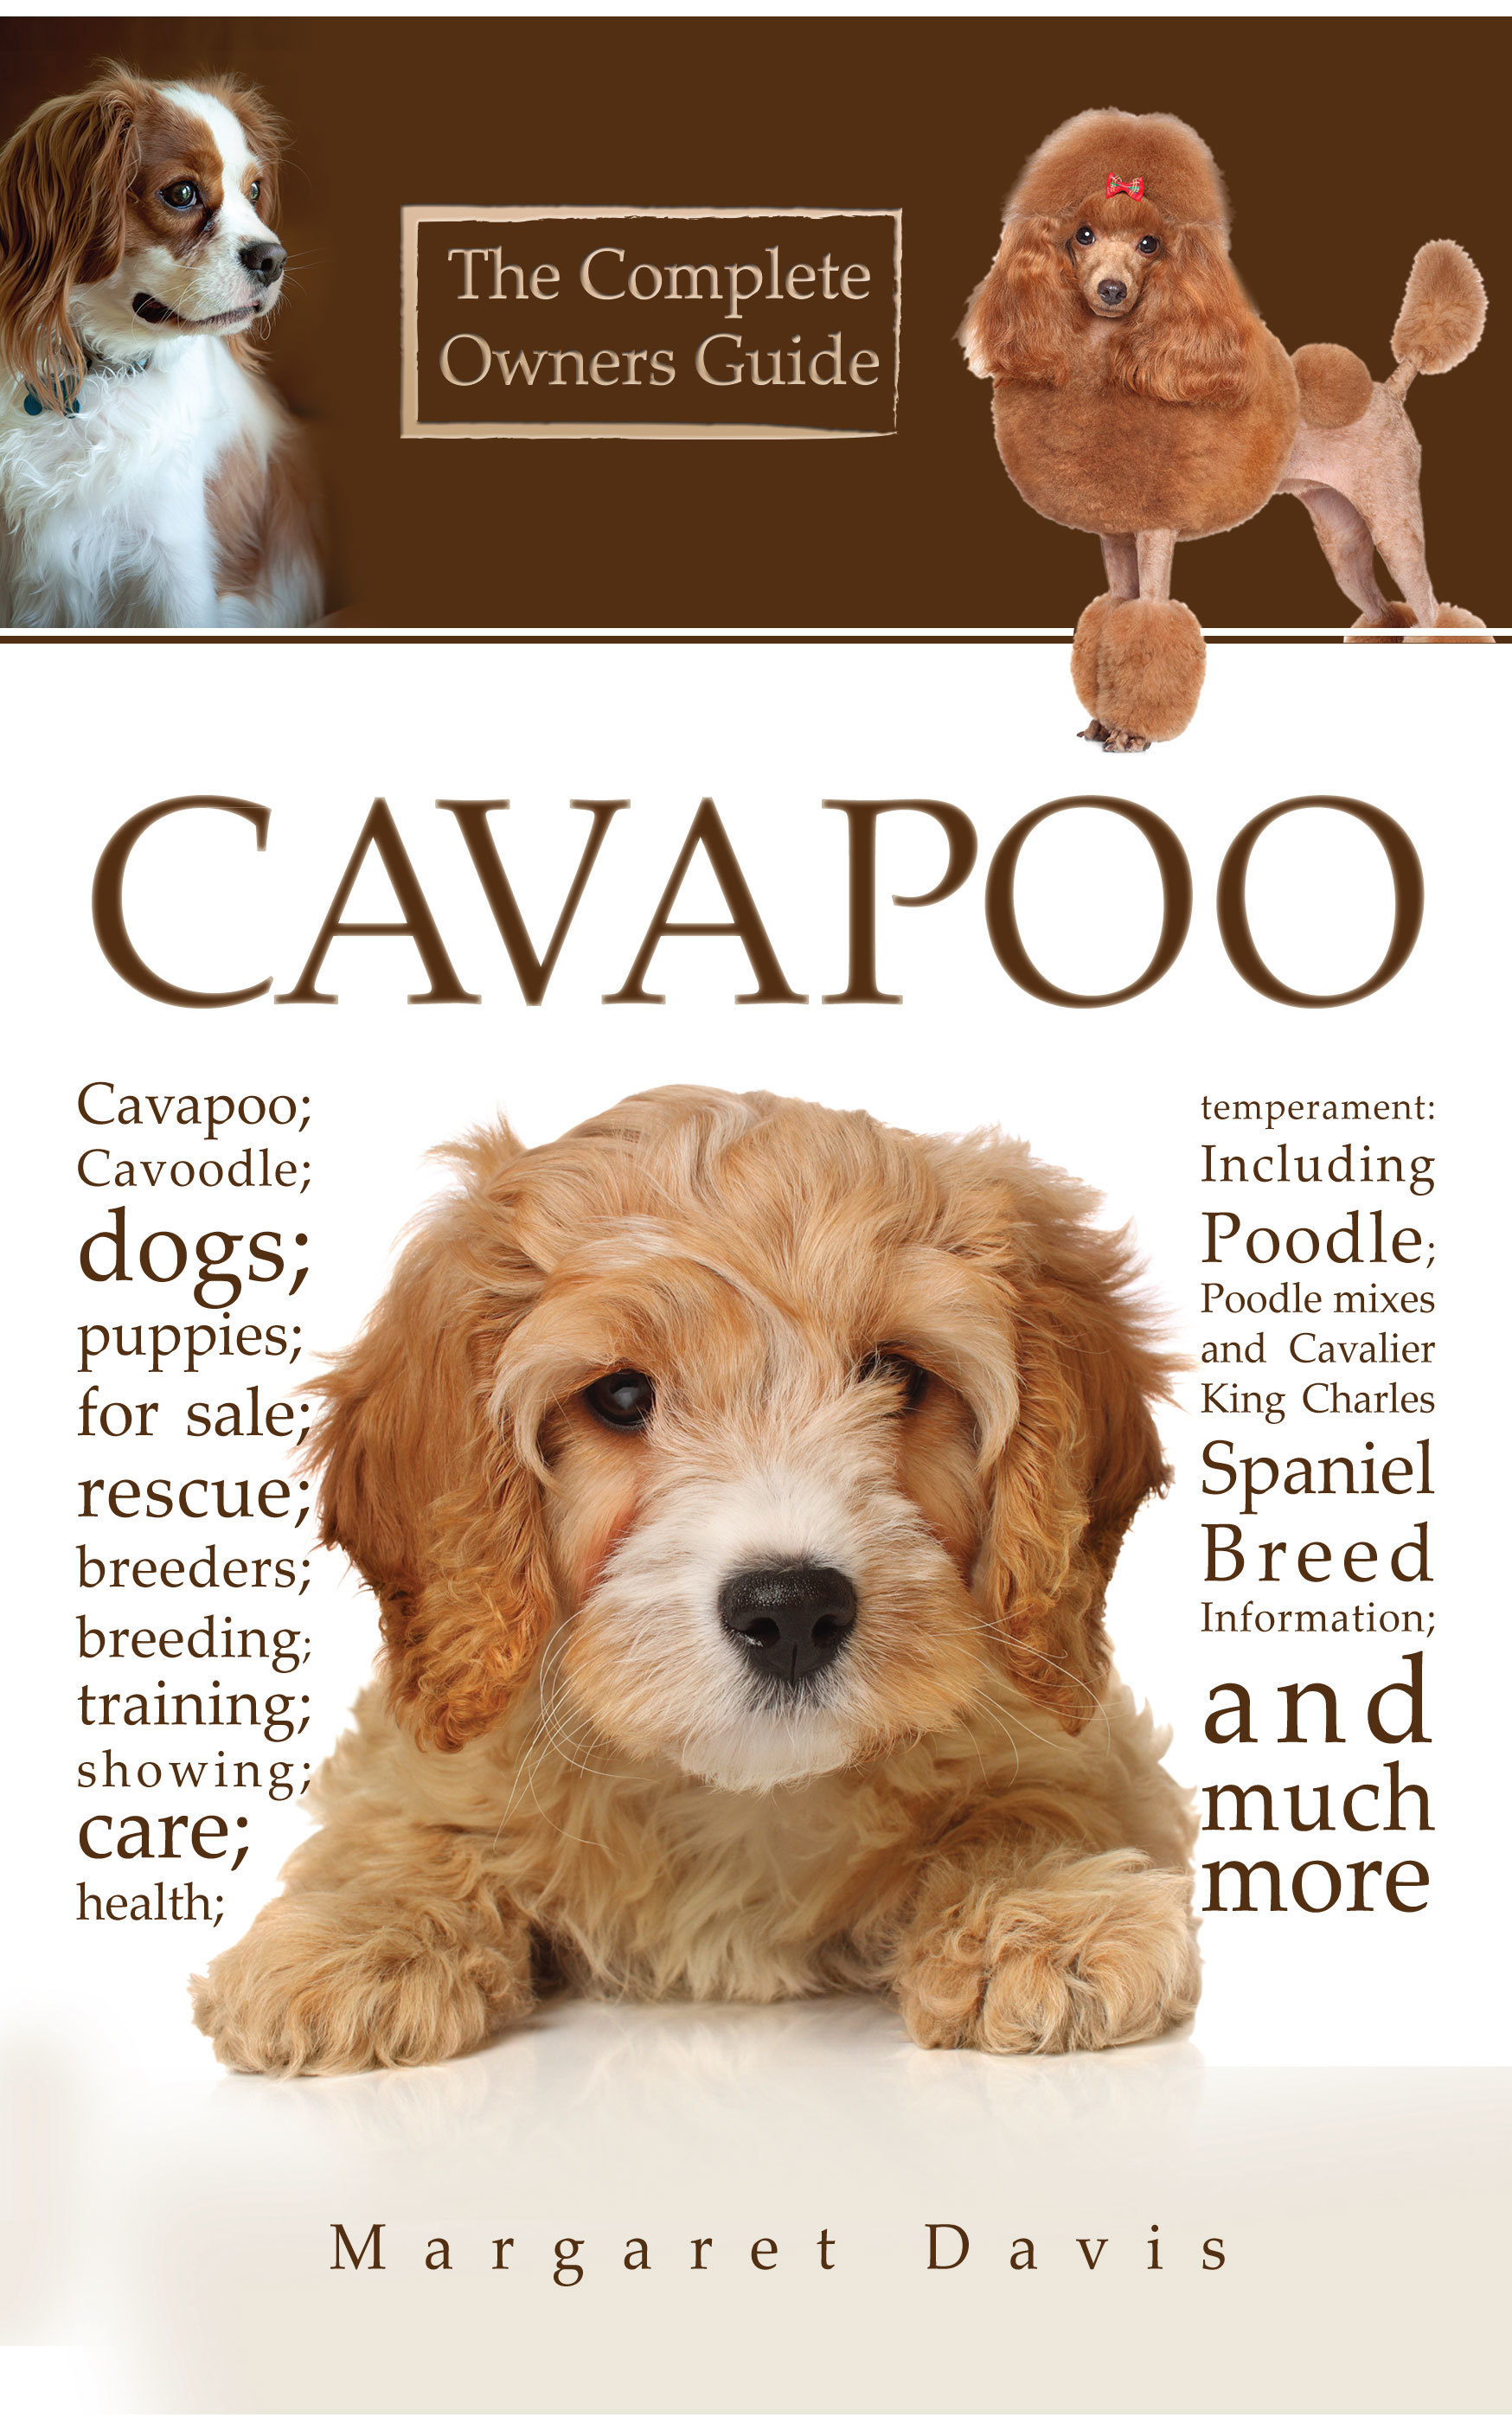 Cavapoo; Cavoodle; Dogs; Puppies; For Sale; Rescue; Breeders; Breeding; Training; Showing; Care; Health; Temperament: Including Poodle; Poodle Mixes And Cavalier King Charles Spaniel Breed Information